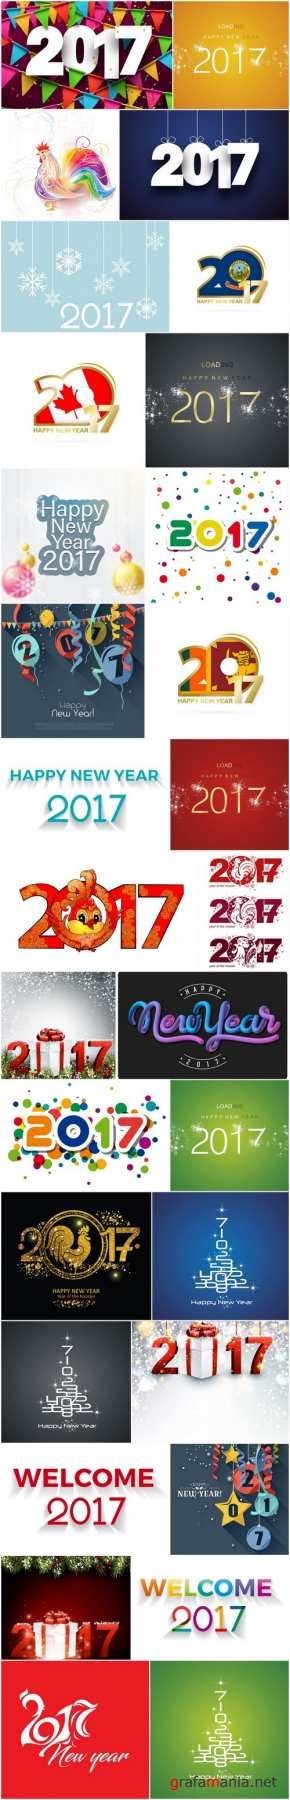 New Year Design 2017 part 8 - Set of 30xEPS Professional Vector Stock